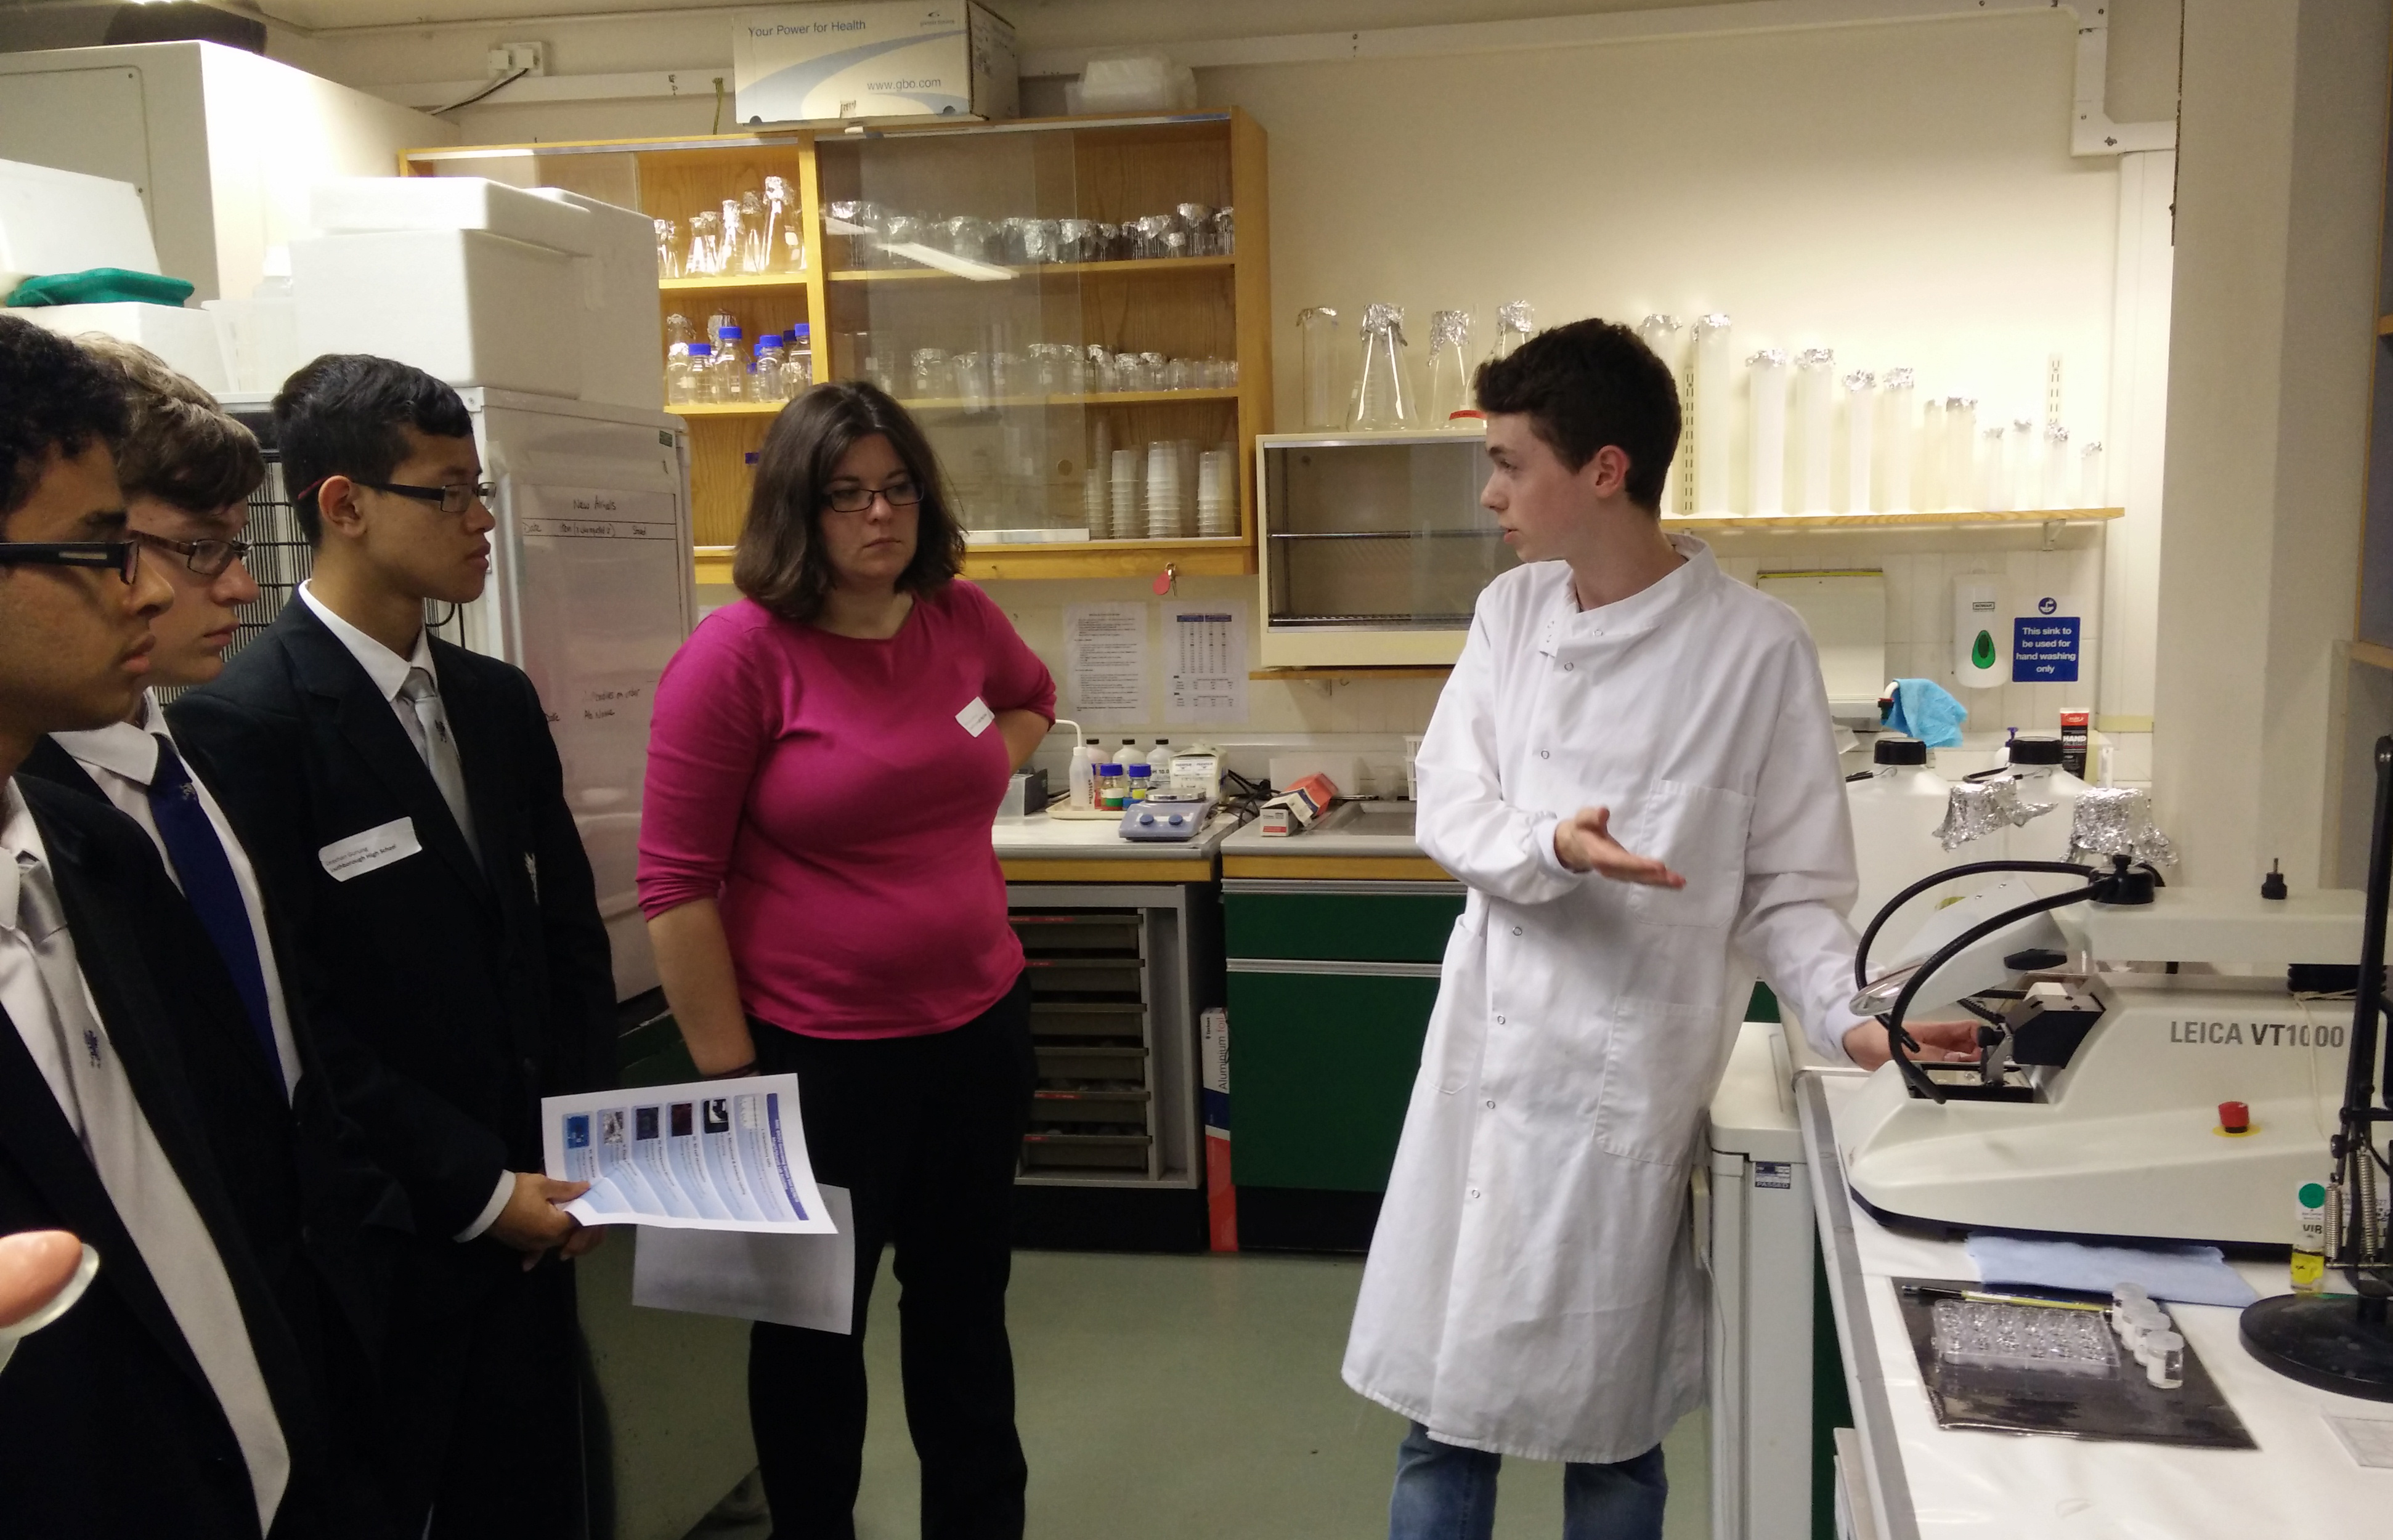 Unit FHS undergraduate student Calum McIntyre shows visiting pupils some of his research on brain structure.